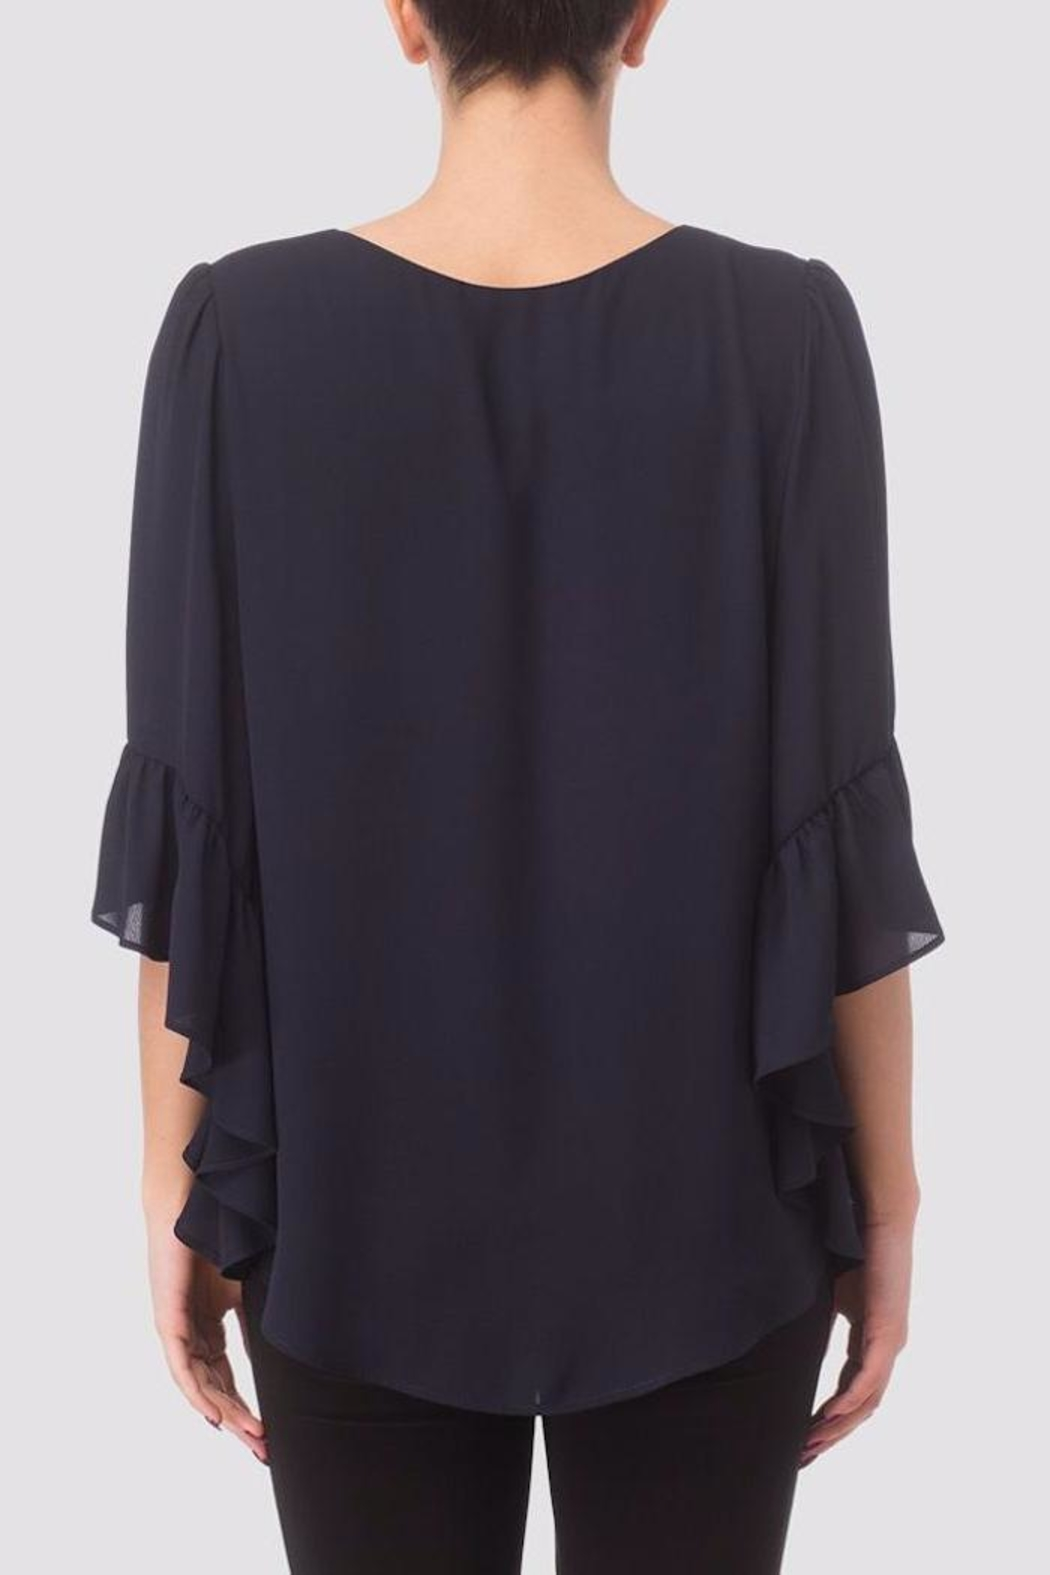 Joseph Ribkoff Ruffle Bell-Sleeve Blouse - Front Full Image